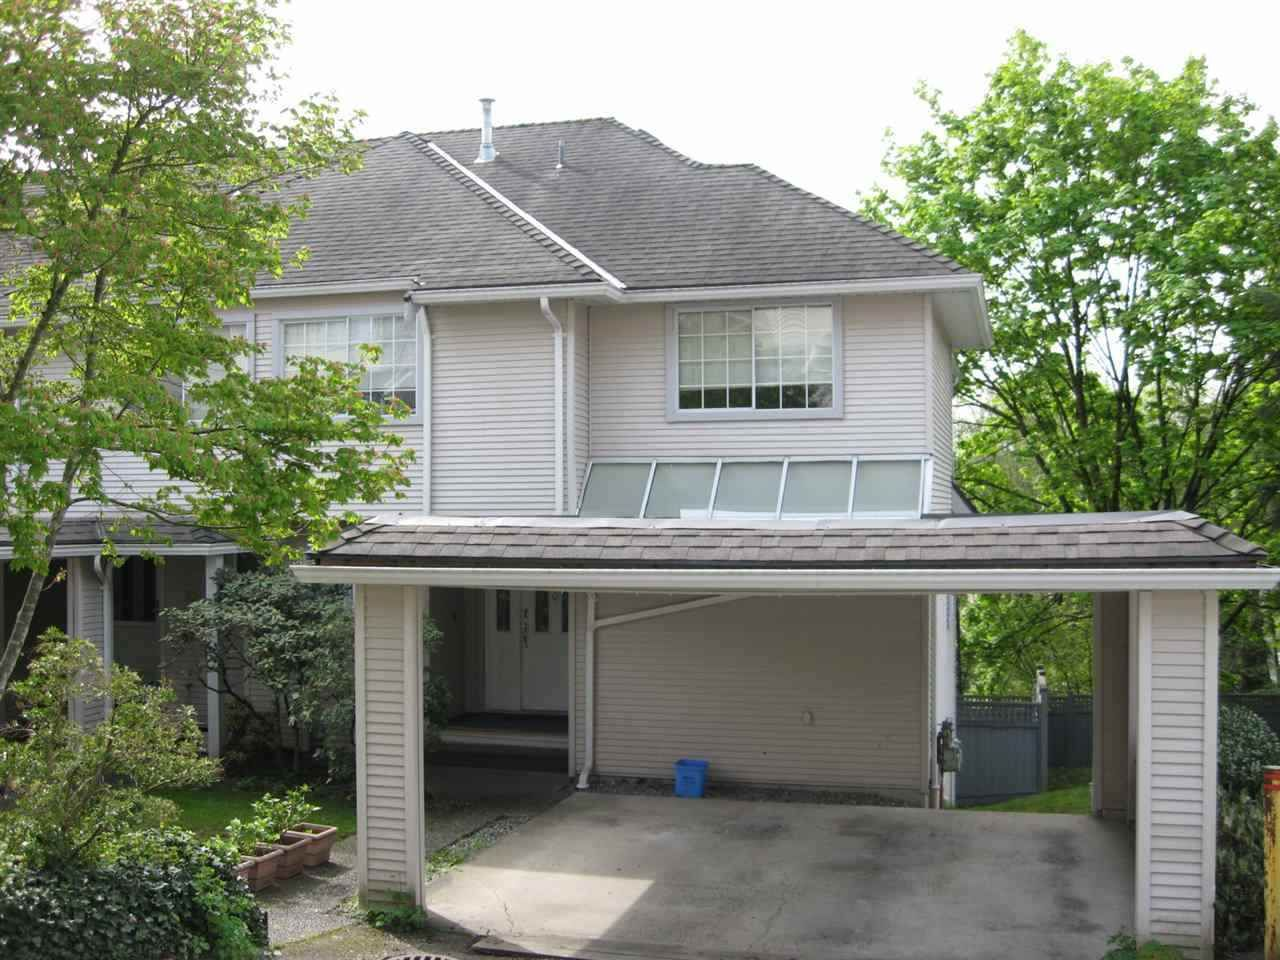 """Main Photo: 32 1216 JOHNSON Street in Coquitlam: Scott Creek Townhouse for sale in """"Wedgewood Hills"""" : MLS®# R2562635"""